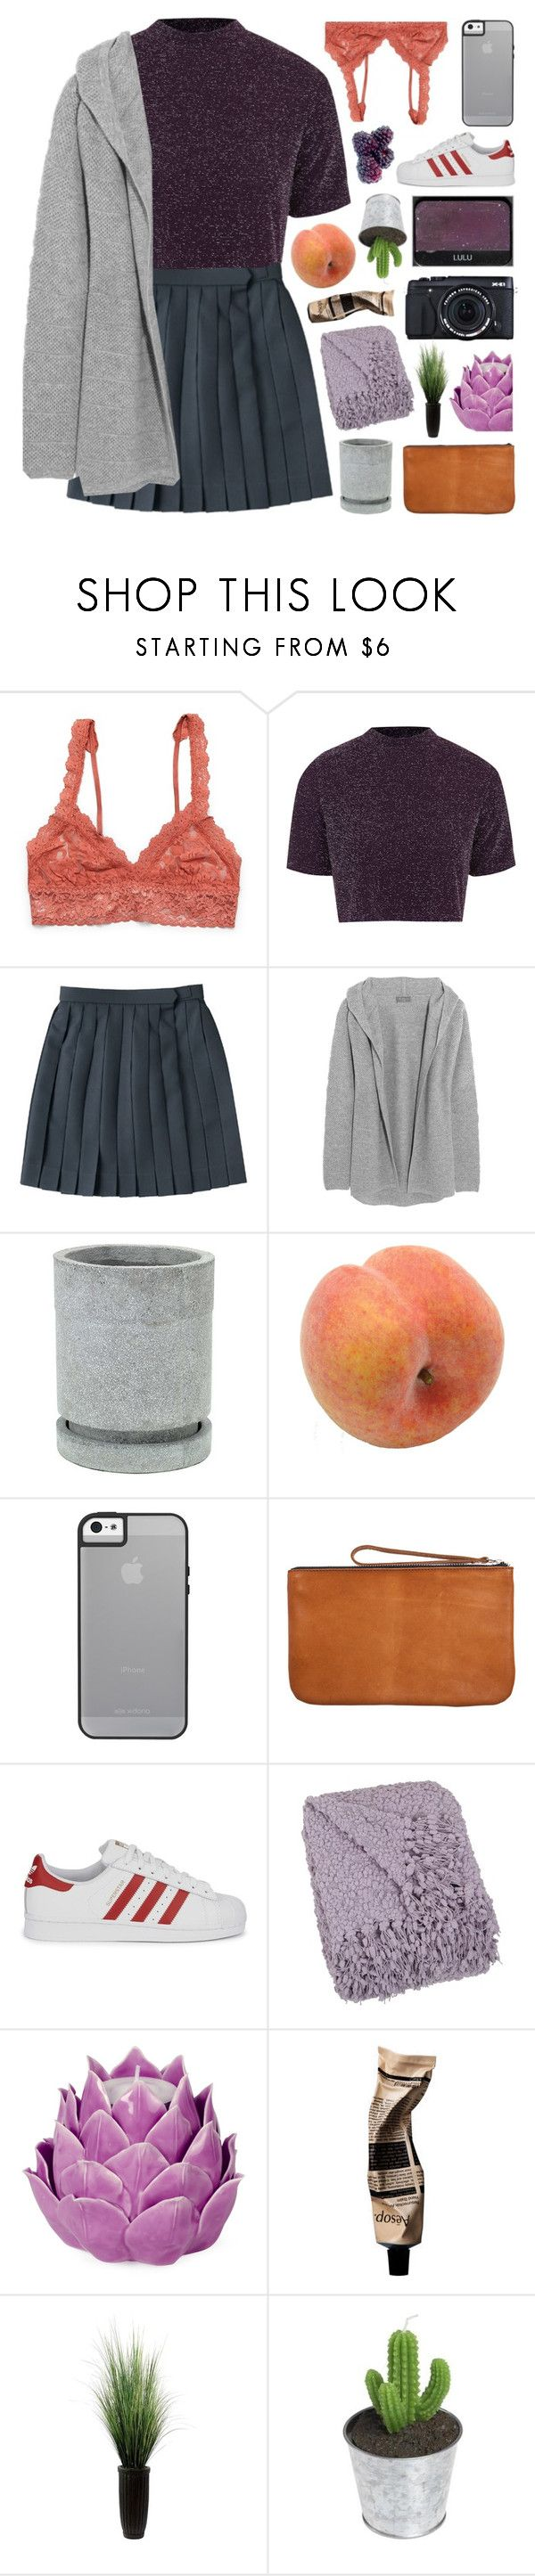 """""""THIS IS THE SONG FOR NO ONE ⚘"""" by d0ntblink ❤ liked on Polyvore featuring Hanky Panky, Oh My Love, N.Peal, Pavilion Broadway, Pieces, adidas Originals, NARS Cosmetics, Zara Home, Aromatique and Laura Ashley"""